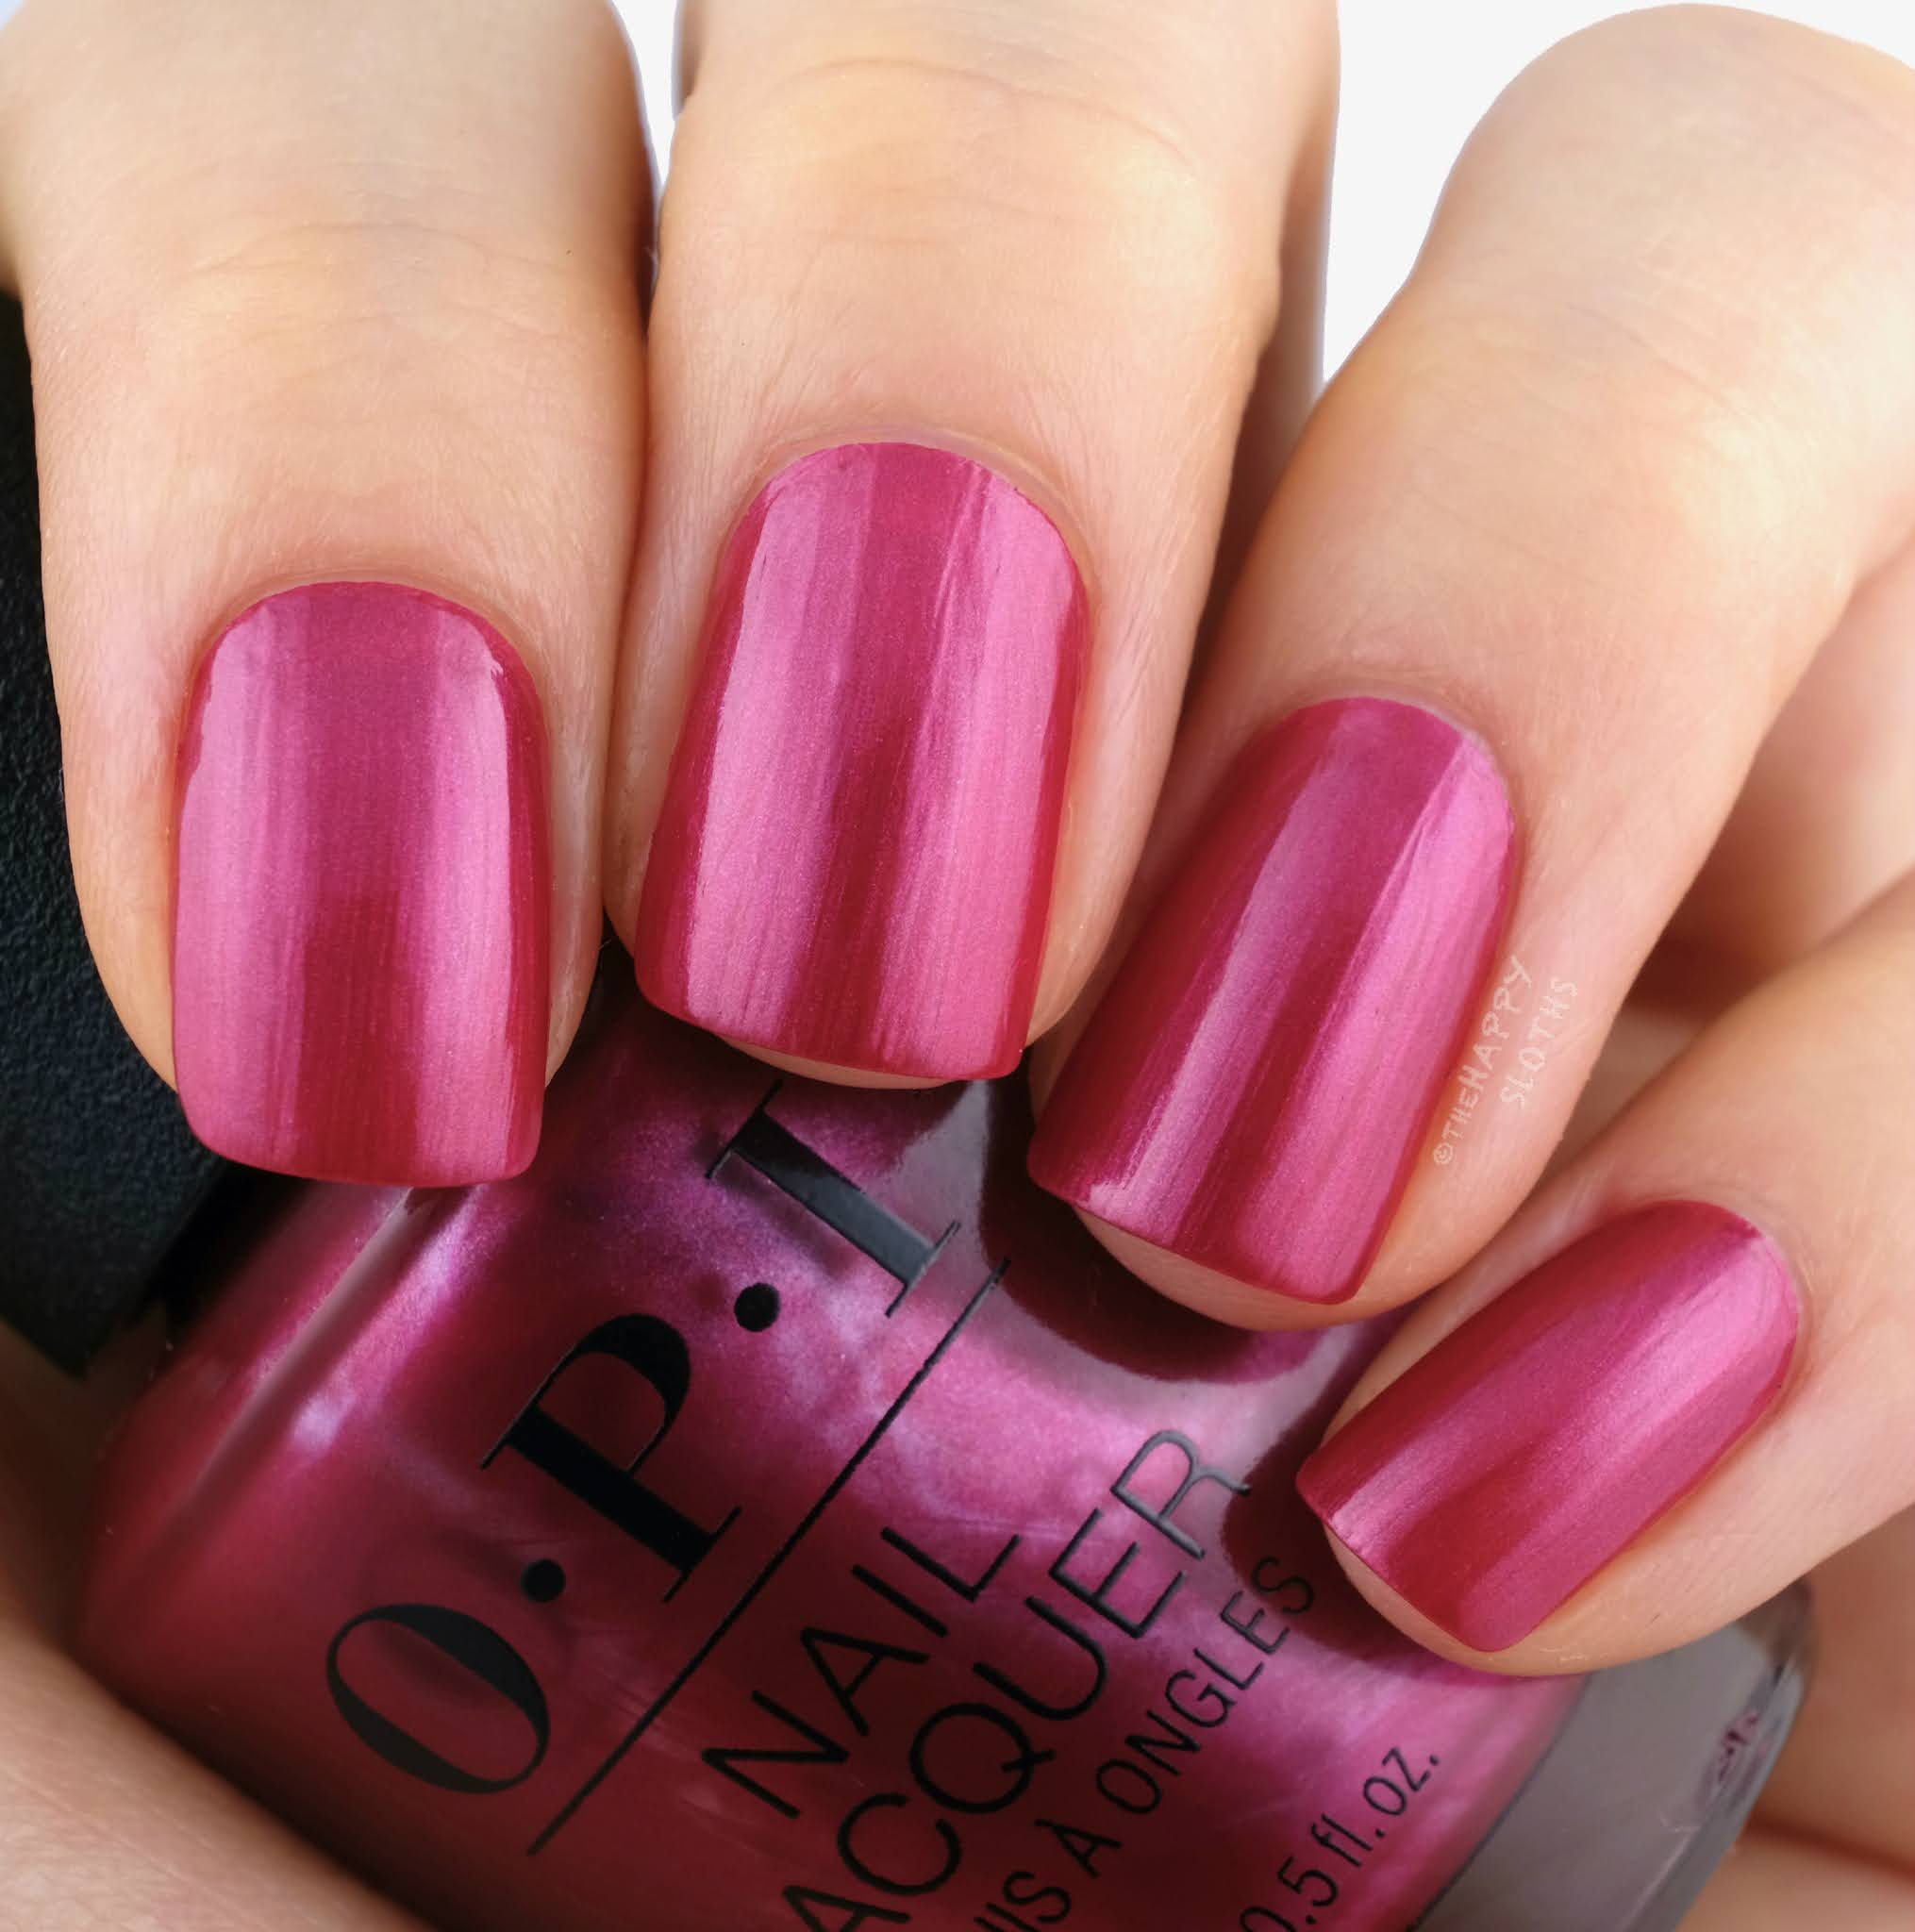 OPI Holiday 2020 Collection | Merry in Cranberry: Review and Swatches